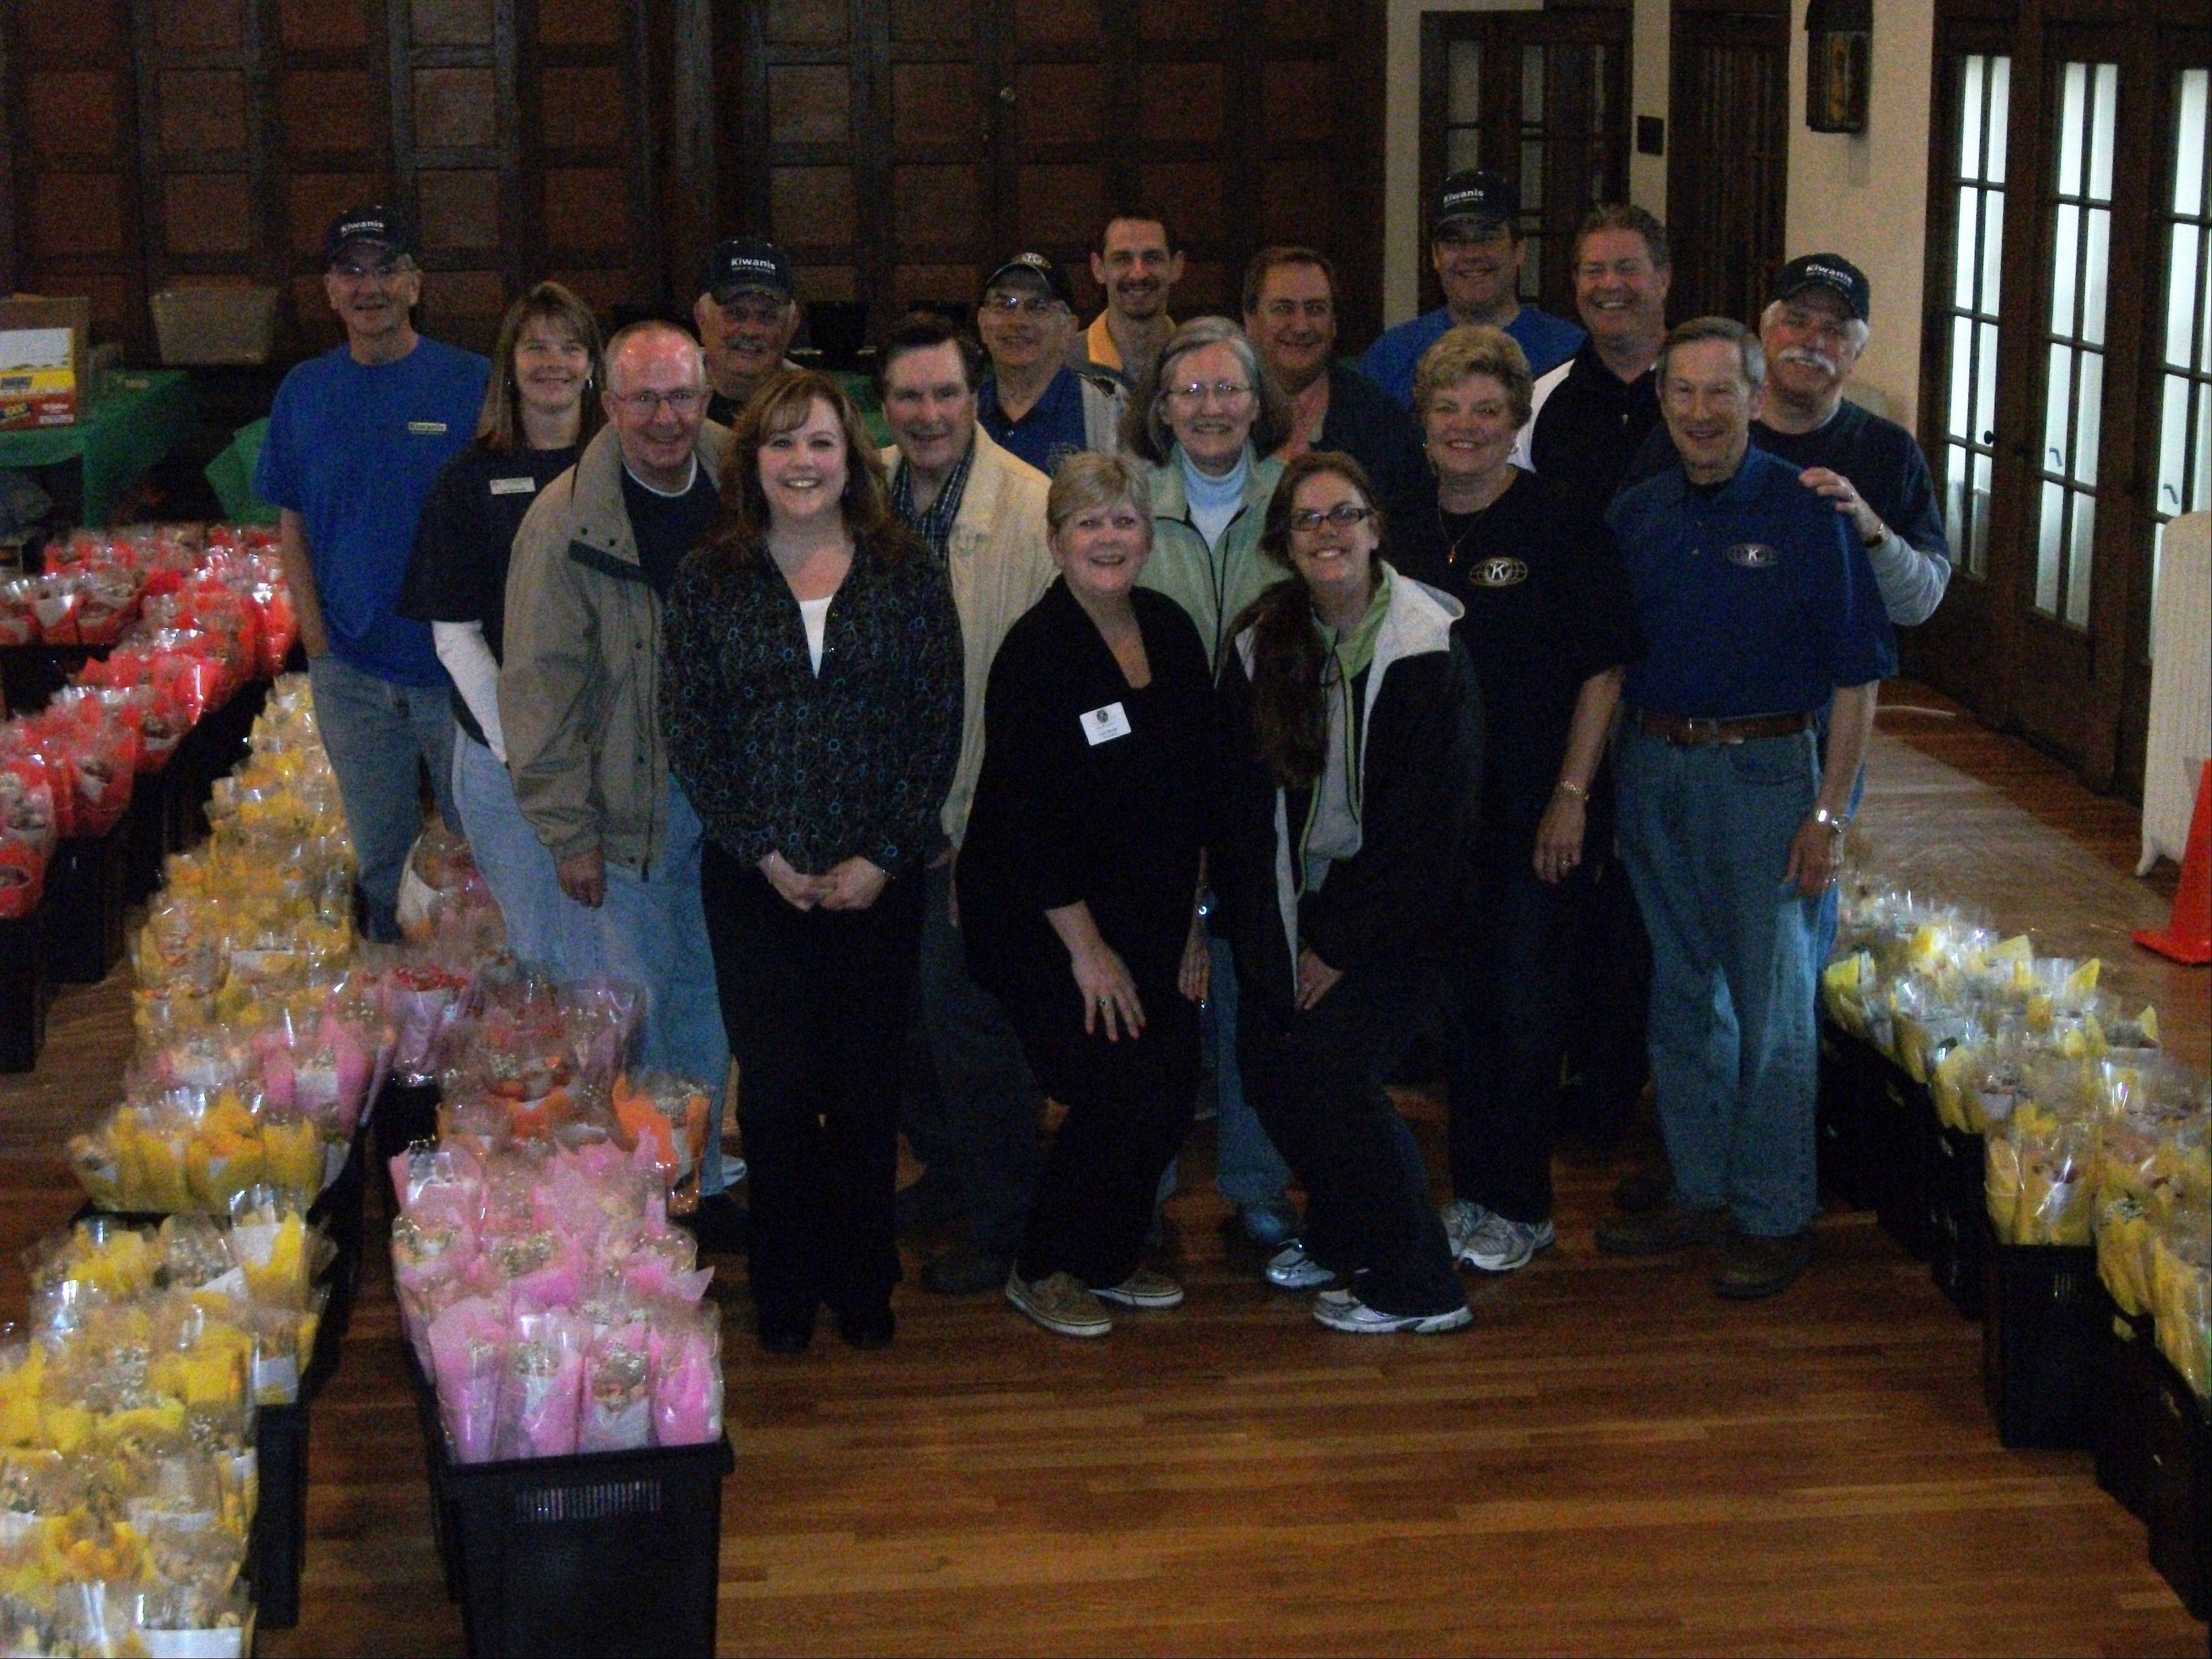 Kiwanians began arriving at 5:30 a.m. and worked until late afternoon to make sure the more than 1,200 dozen roses were delivered.